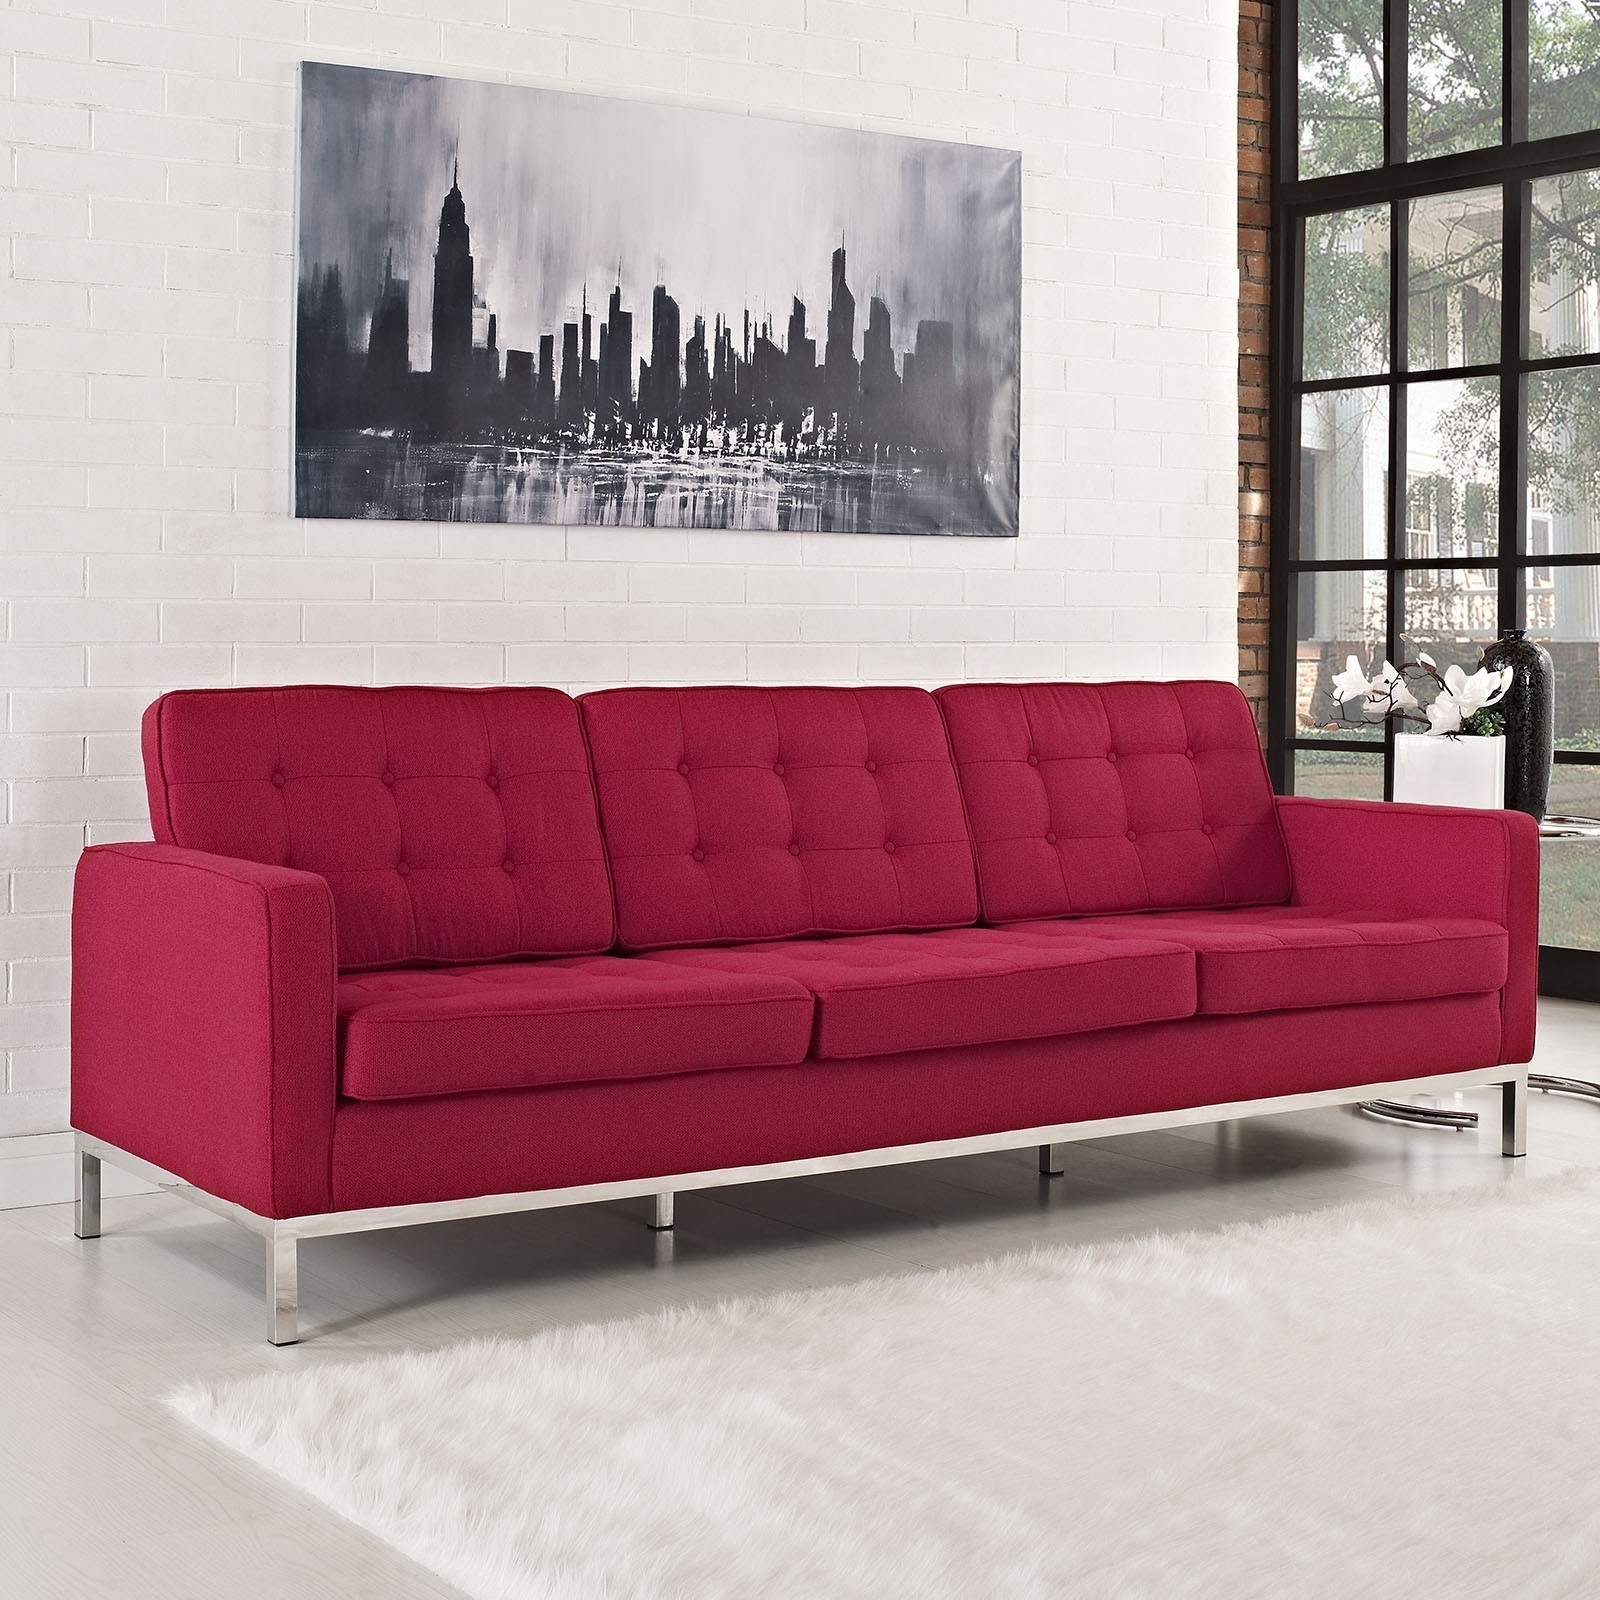 Most Recent Florence Knoll Sofa (View 14 of 20)